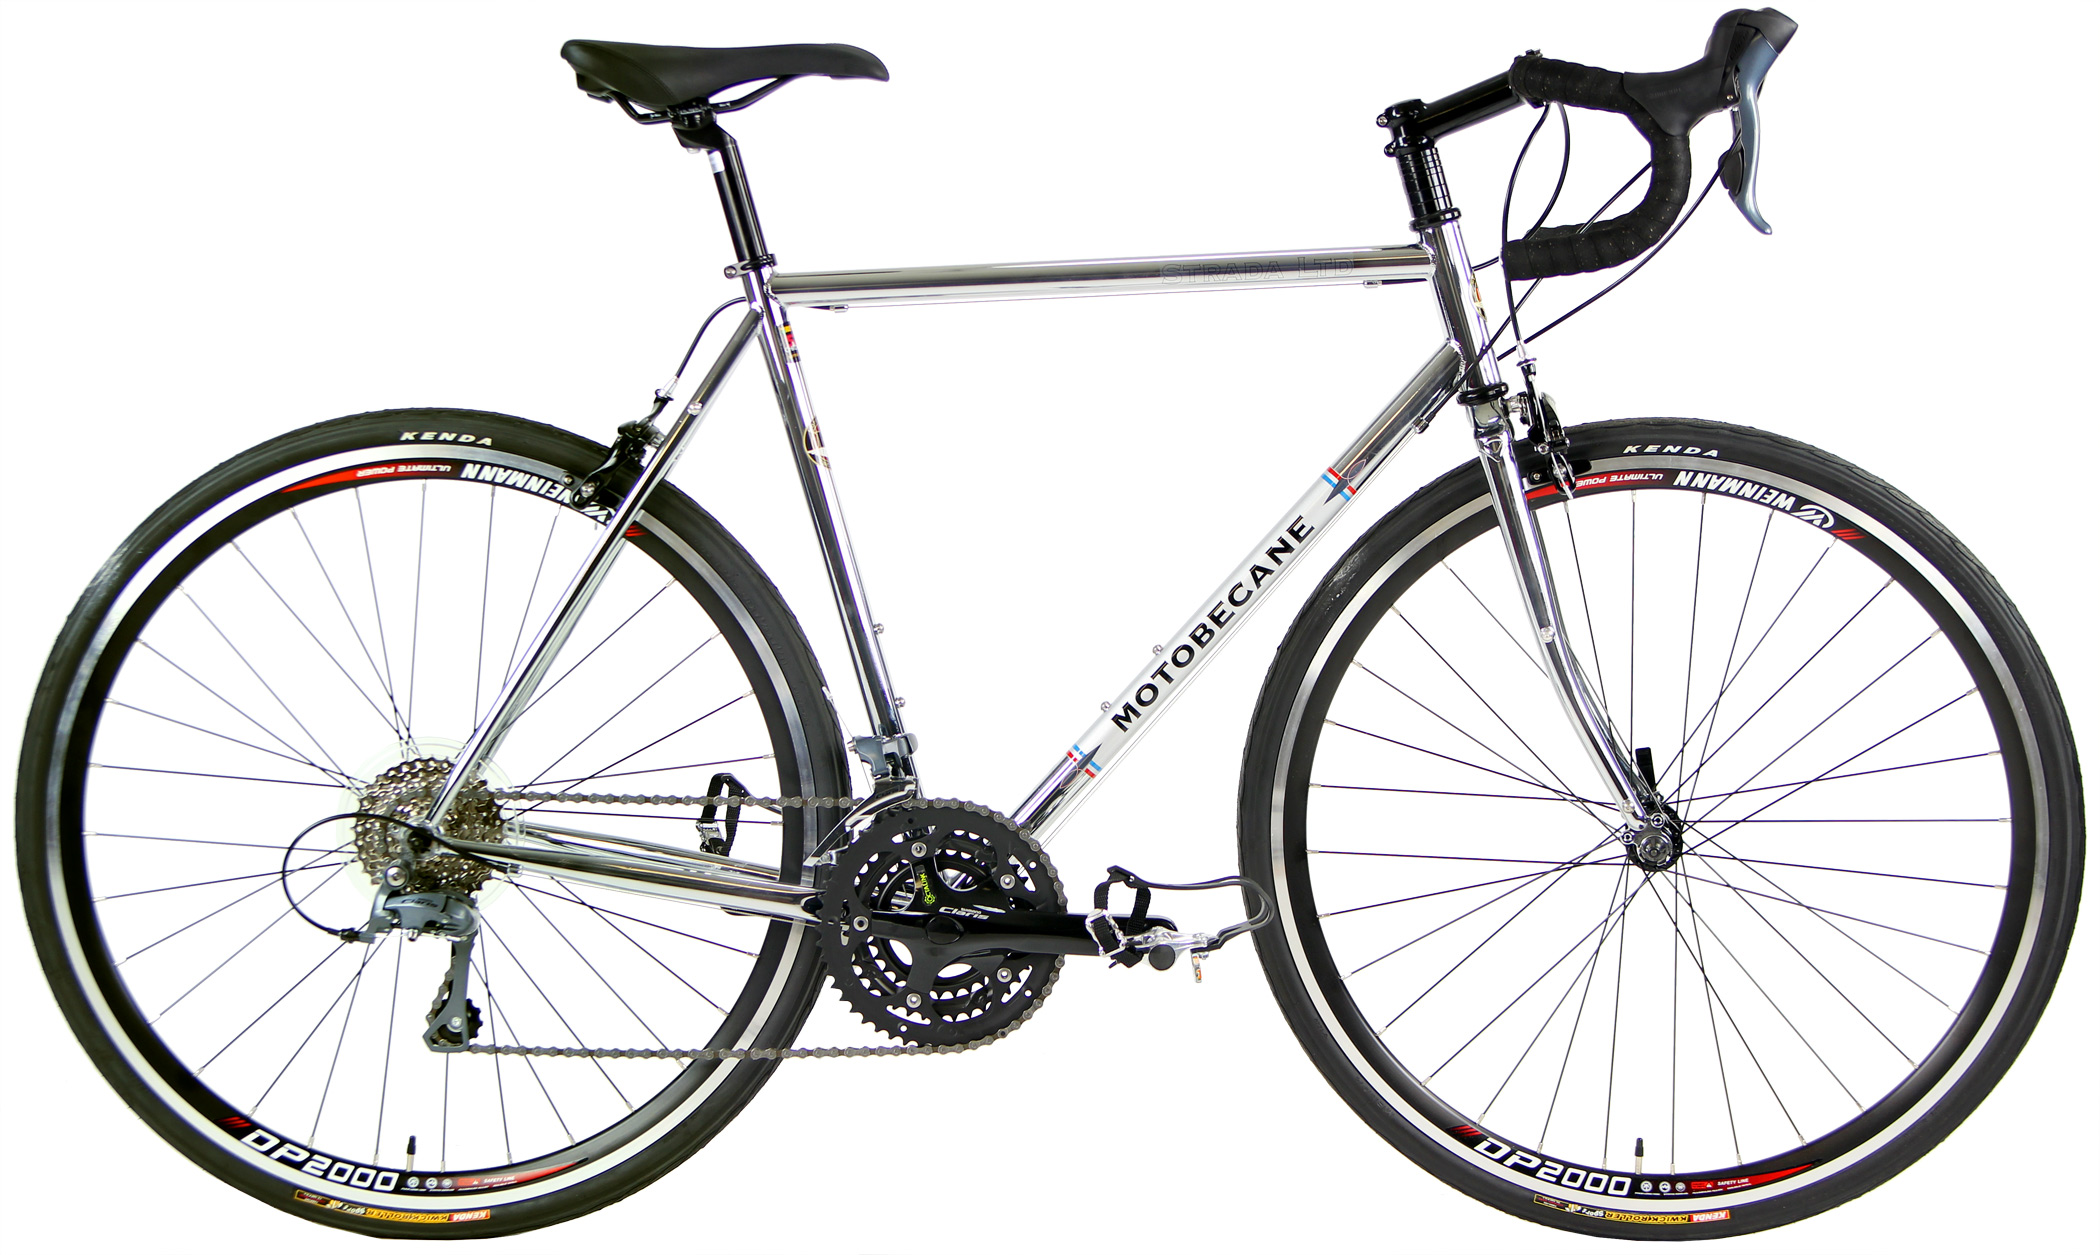 STRADA ltd 1.0 CHROME     - CHROMOLY ROAD BIKE 24sp